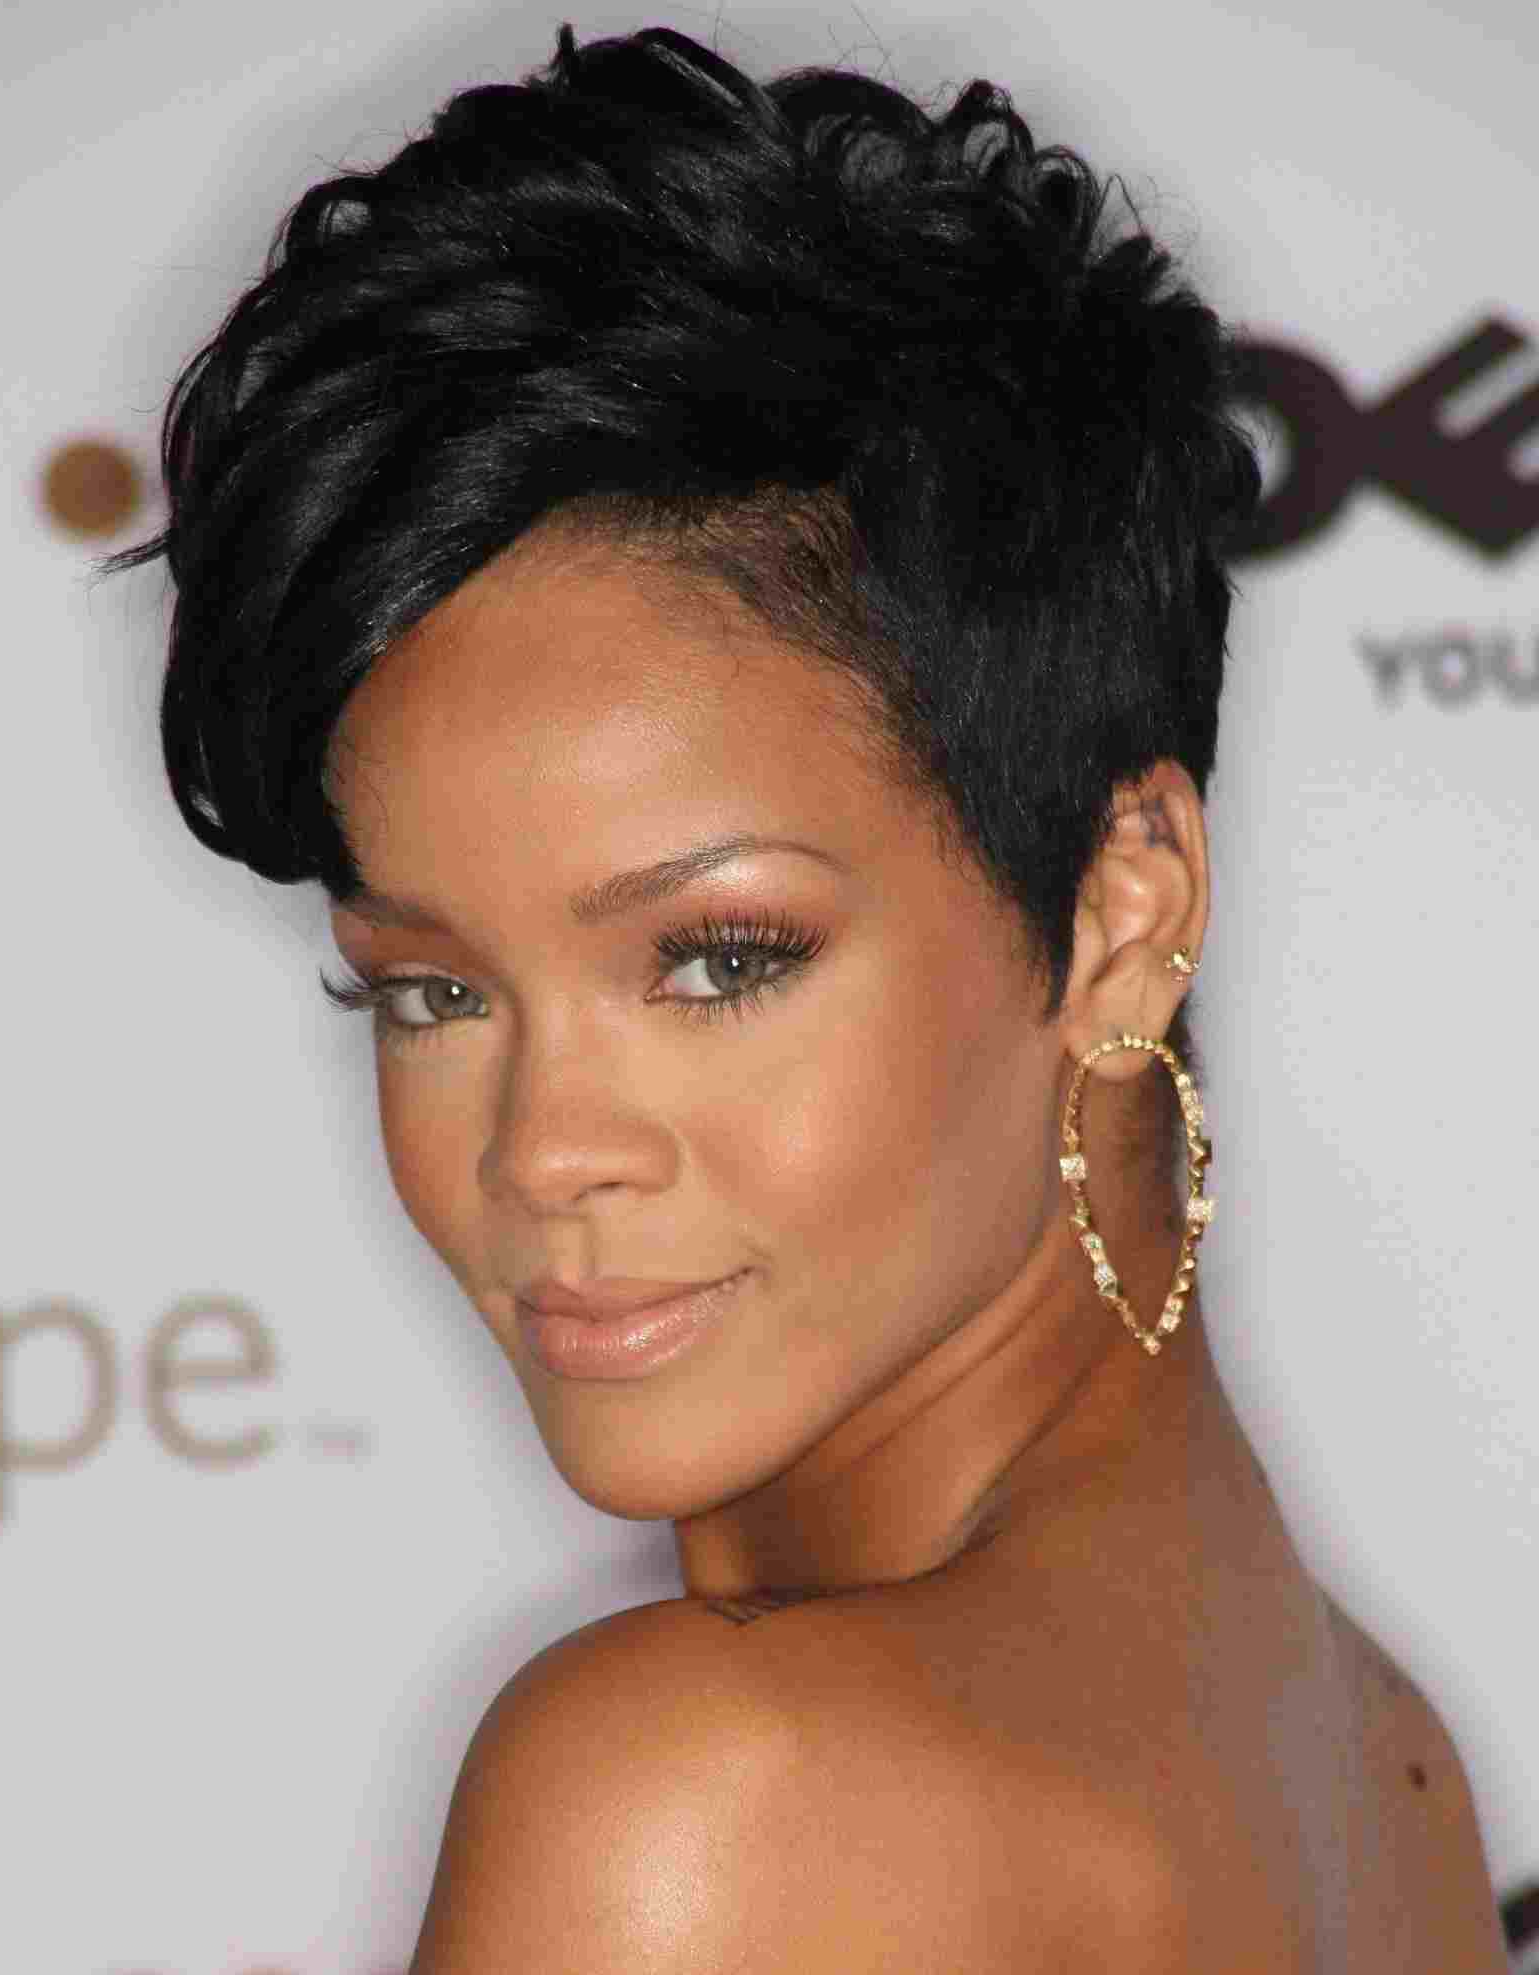 Back View Razor Cut Stock Photos Hd Rhhellomagazininfo Fascinating Within Short Haircuts For Black Women With Fine Hair (View 7 of 25)